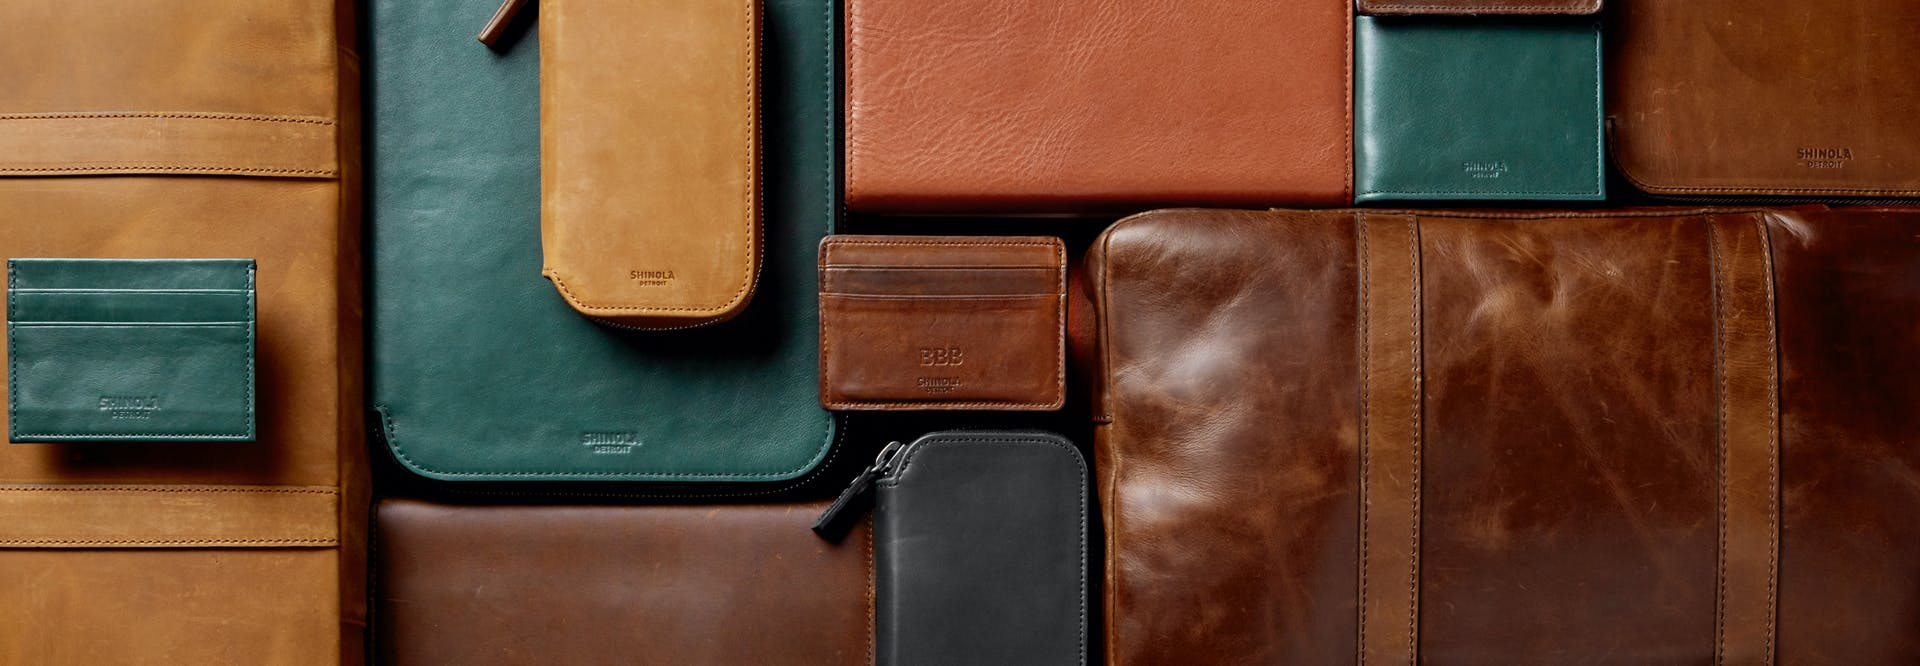 Collection of Shinola leather goods